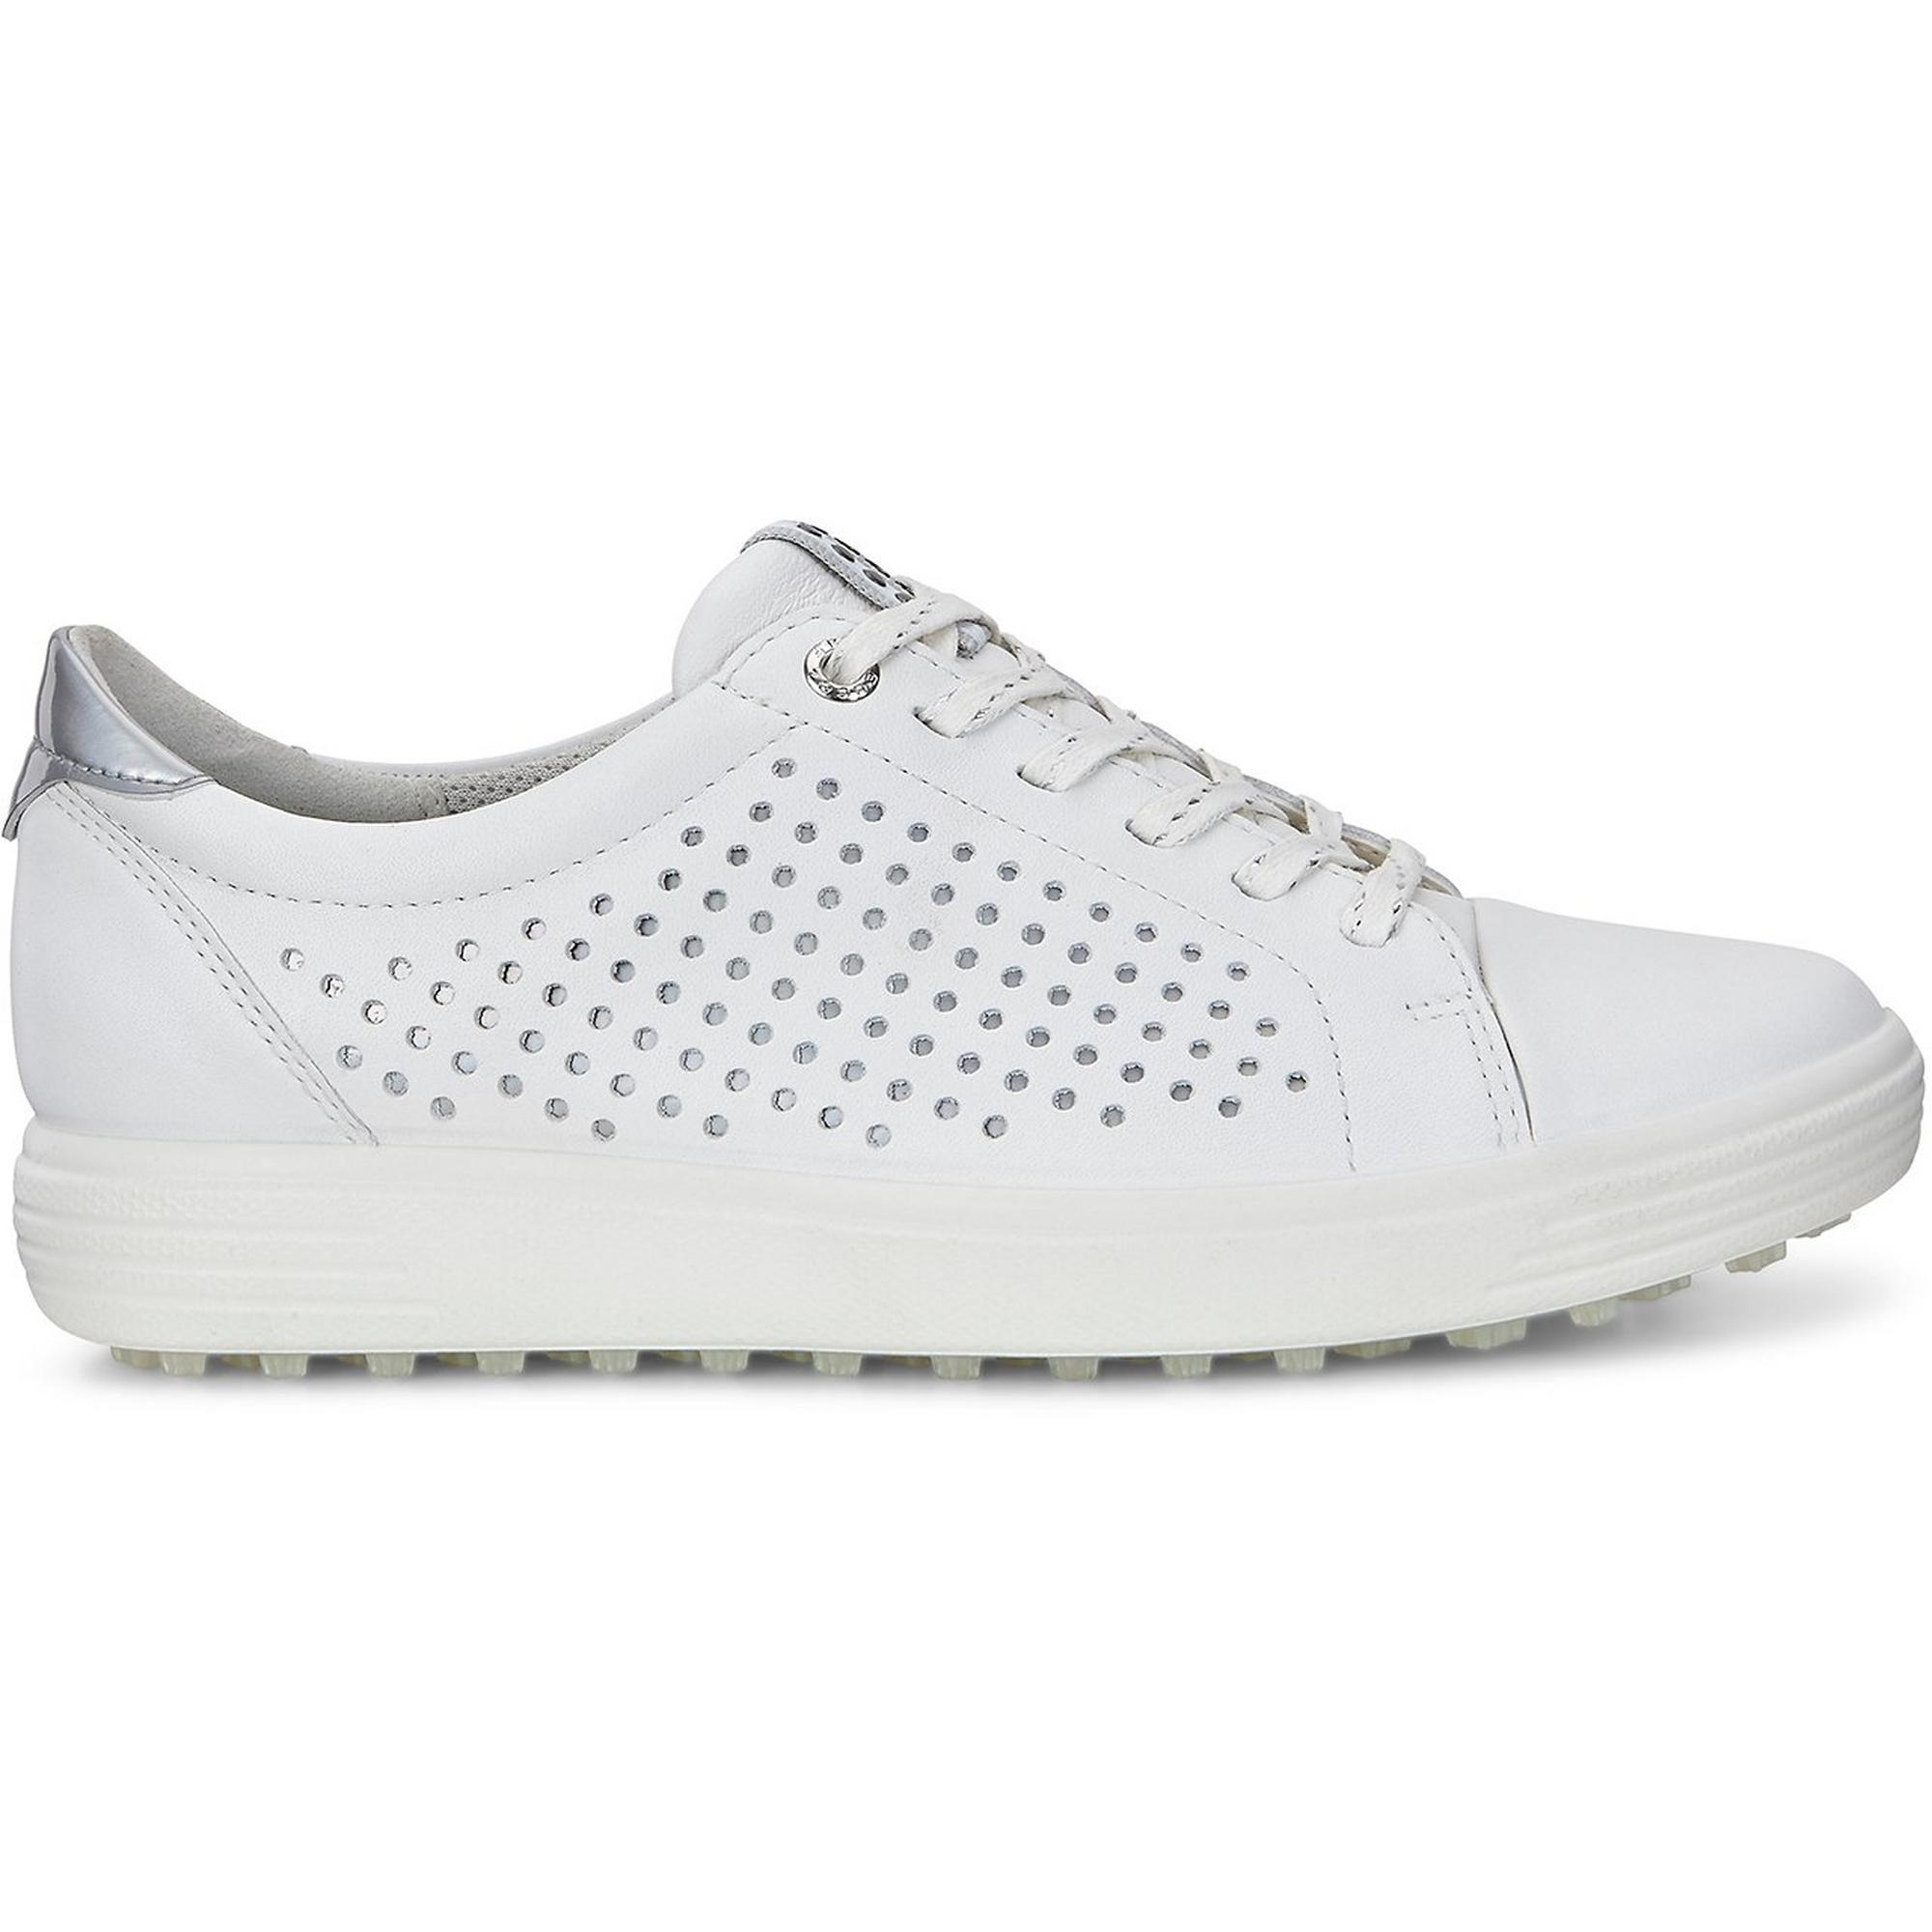 357ff207c6e Women's Casual Hybrid 2 Perf Spikeless Shoe - White/Silver   ECCO   Golf  Town Limited